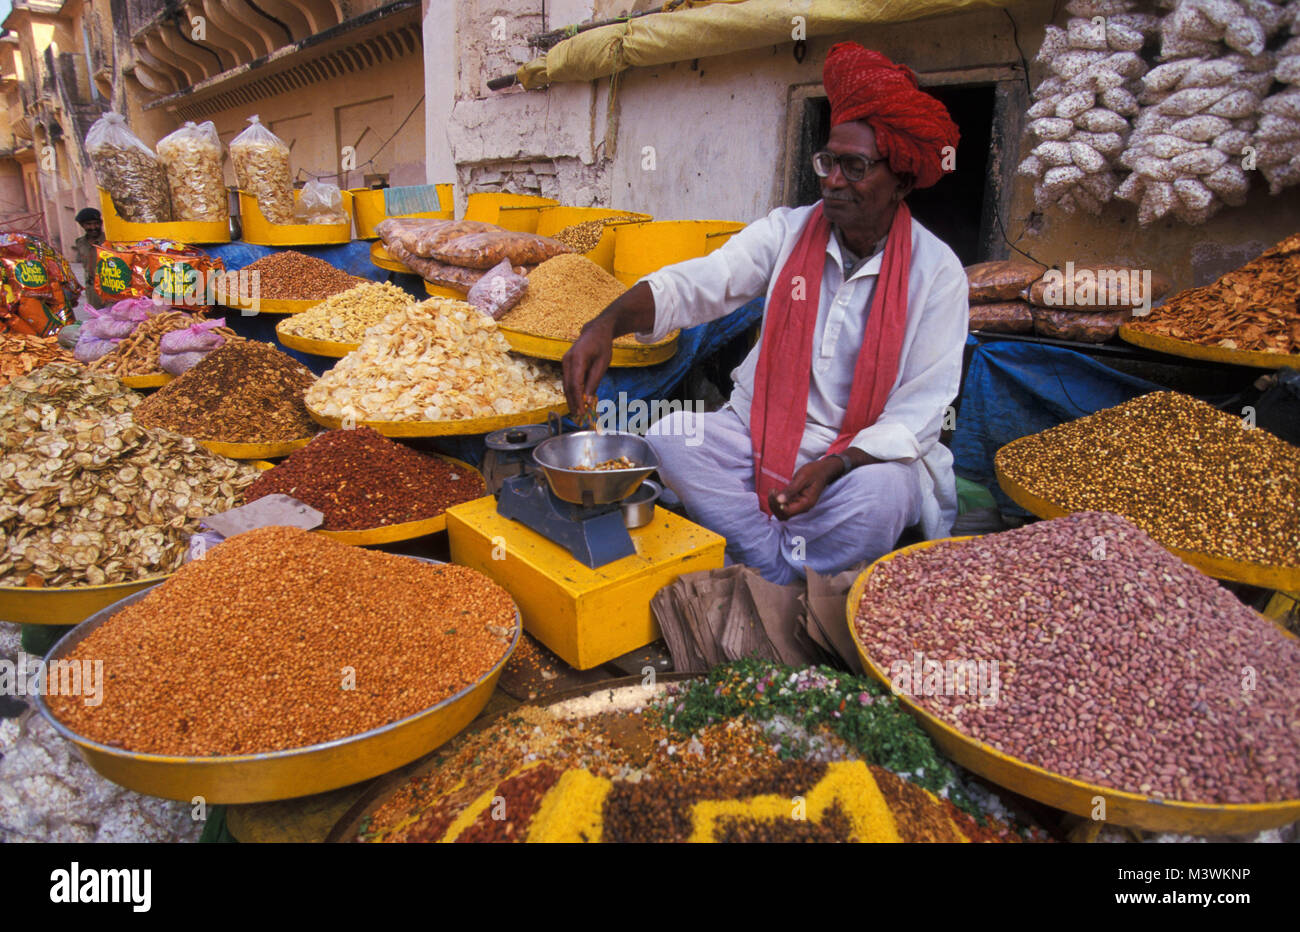 India. Rajasthan. Jaipur. Indian man selling spices on the street near palace. - Stock Image